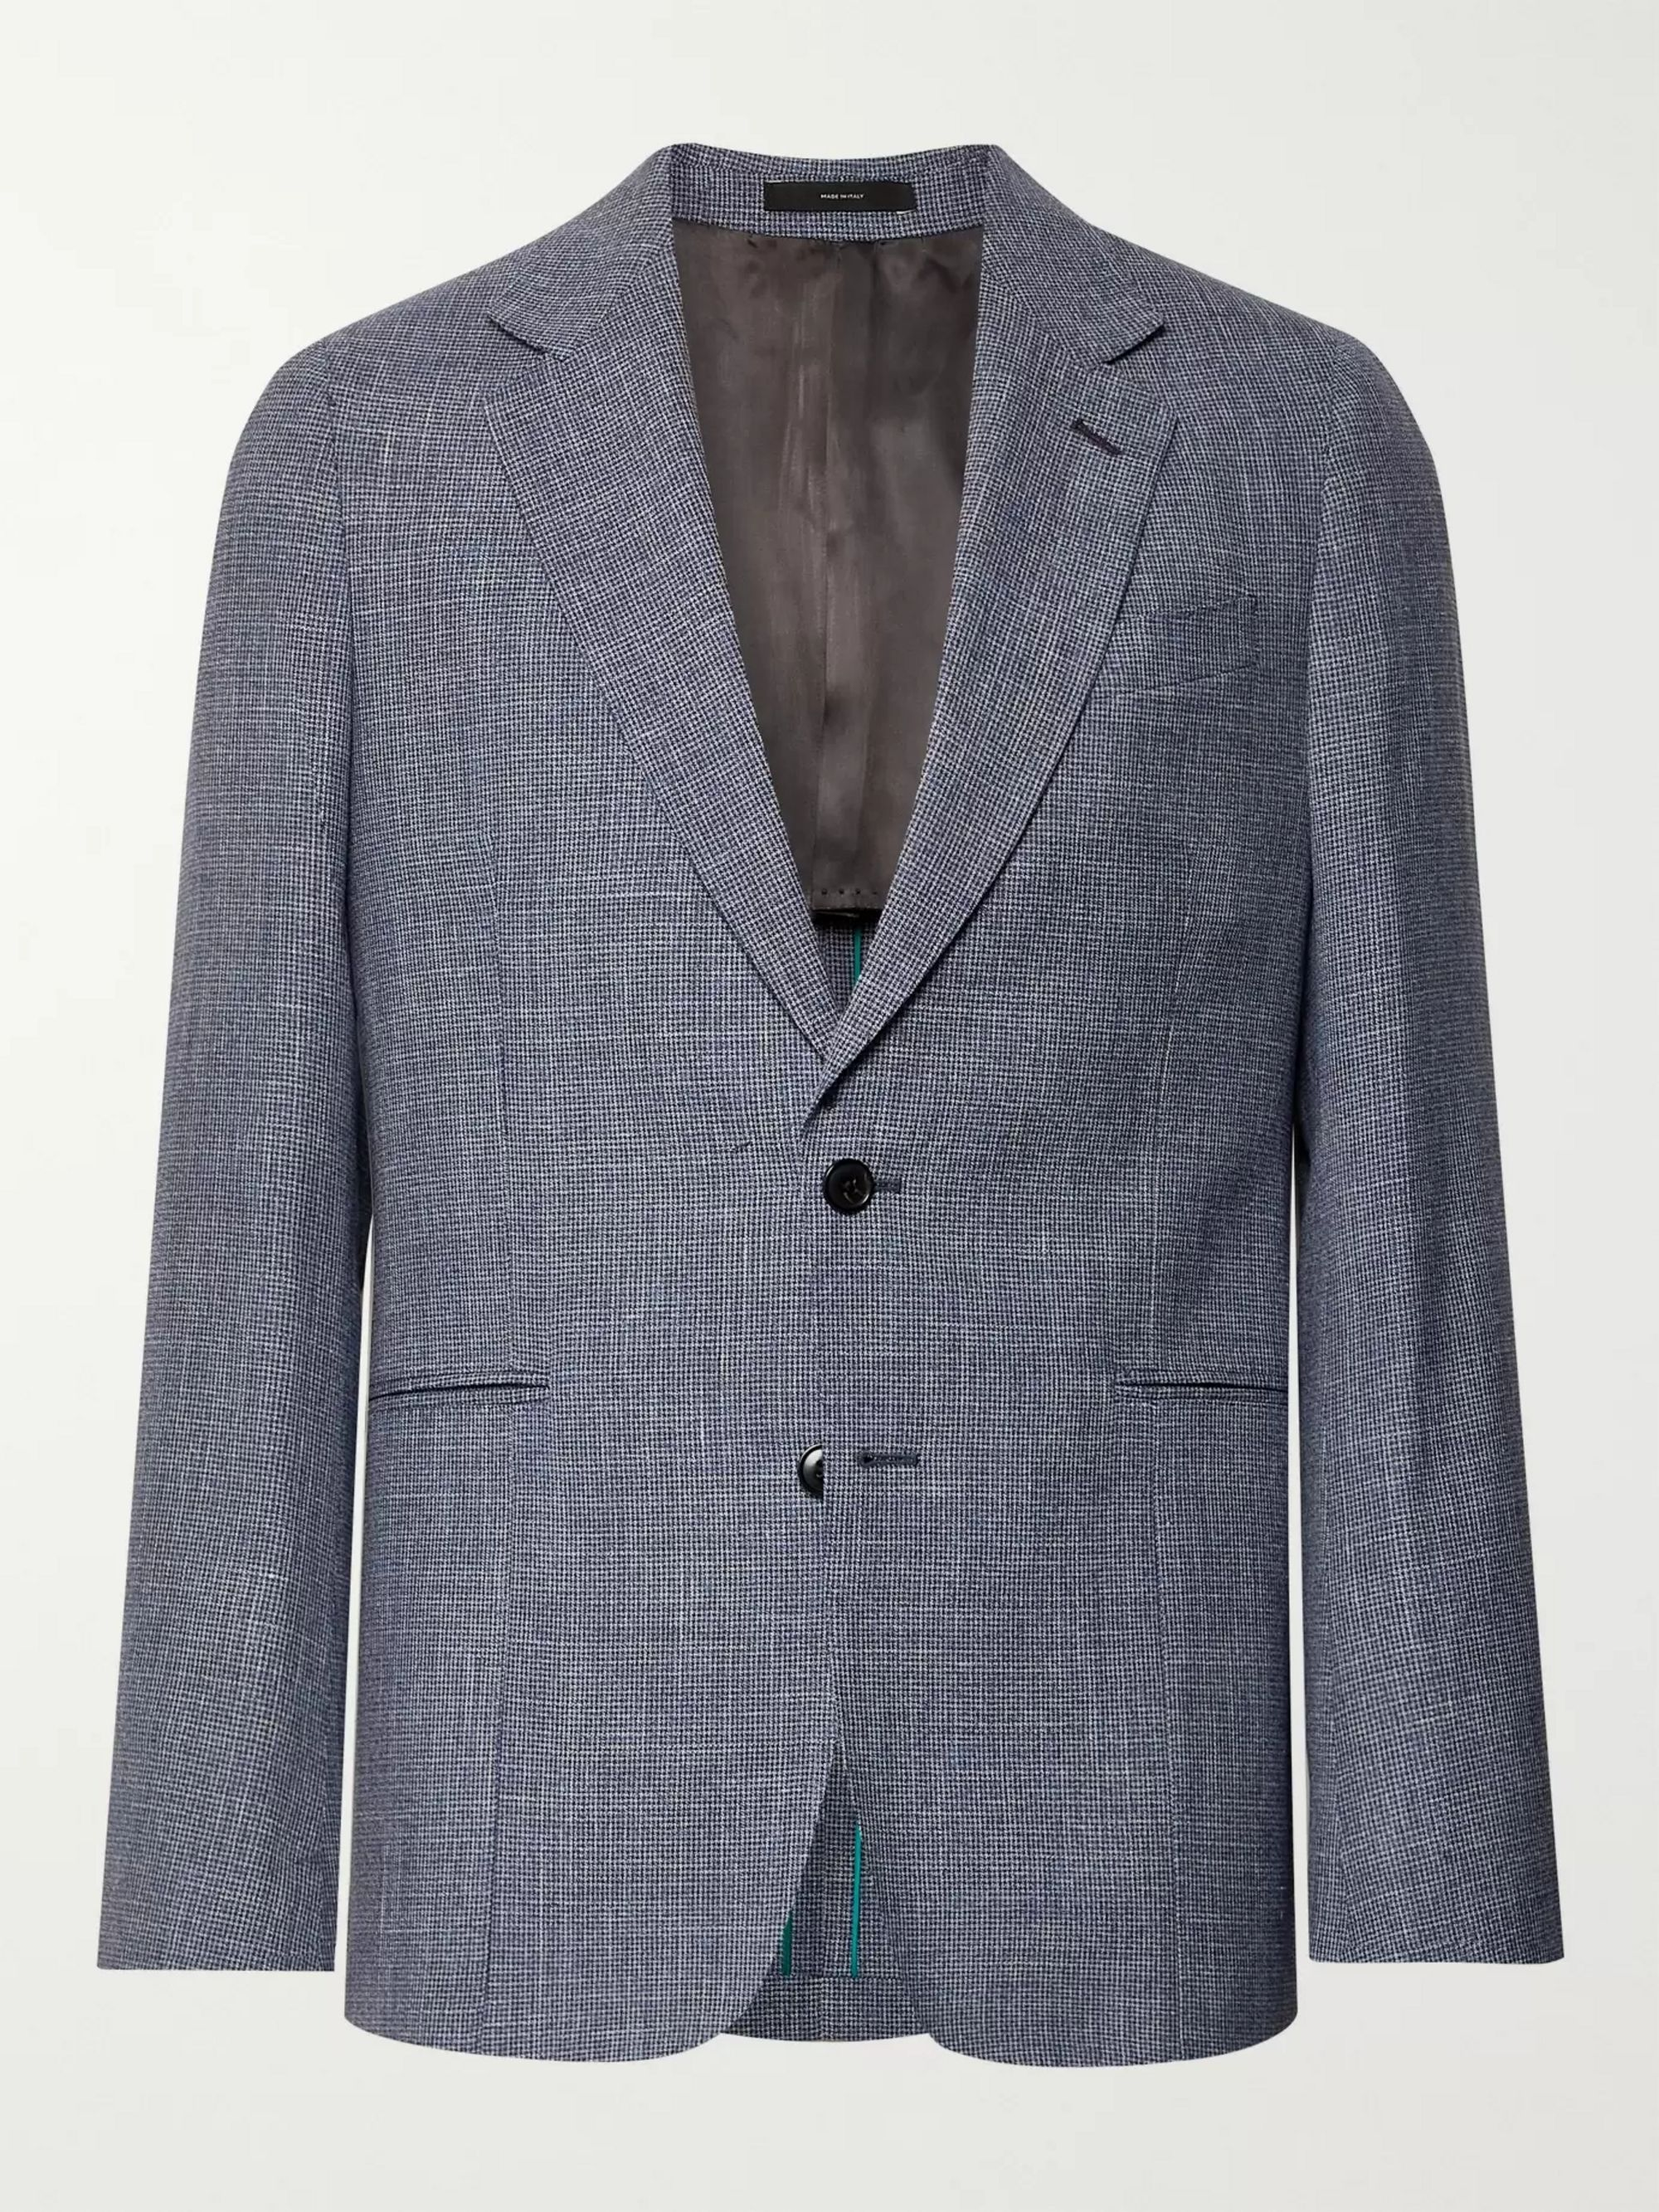 Paul Smith Navy Soho Slim-Fit Puppytooth Wool, Silk and Linen-Blend Suit Jacket